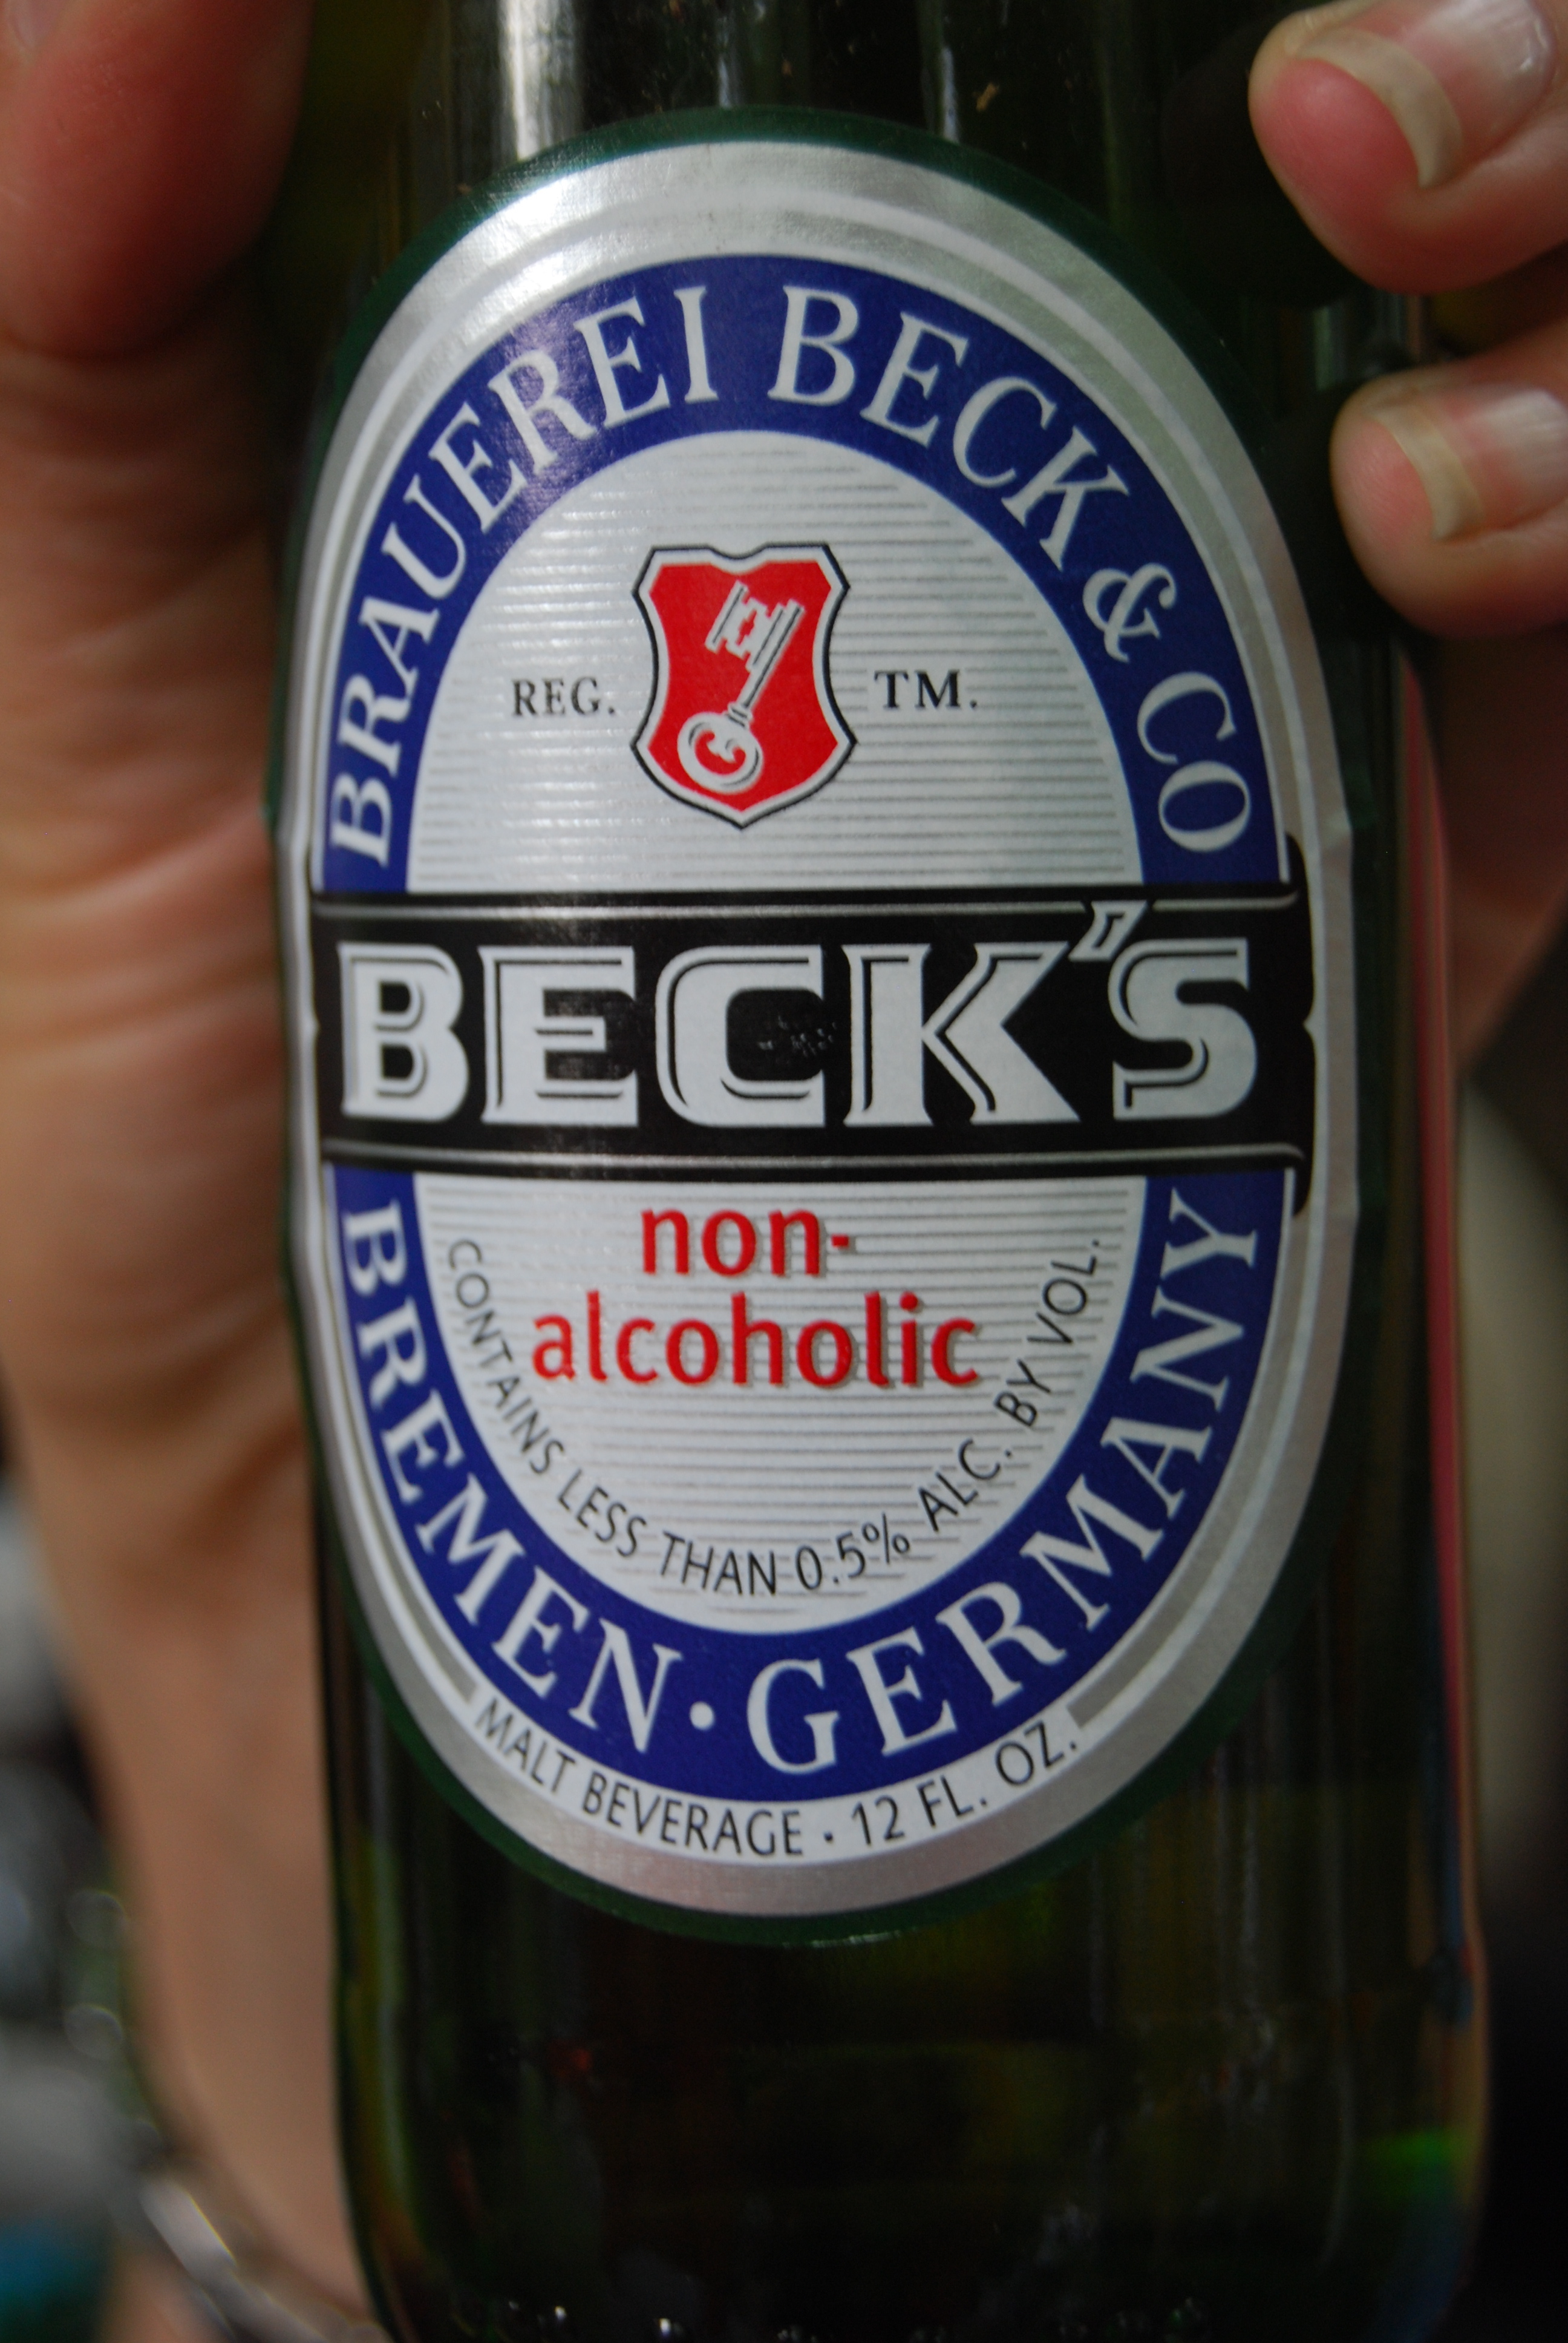 Beck's non-alcoholic beer made others turn their heads at the expectant mothers.